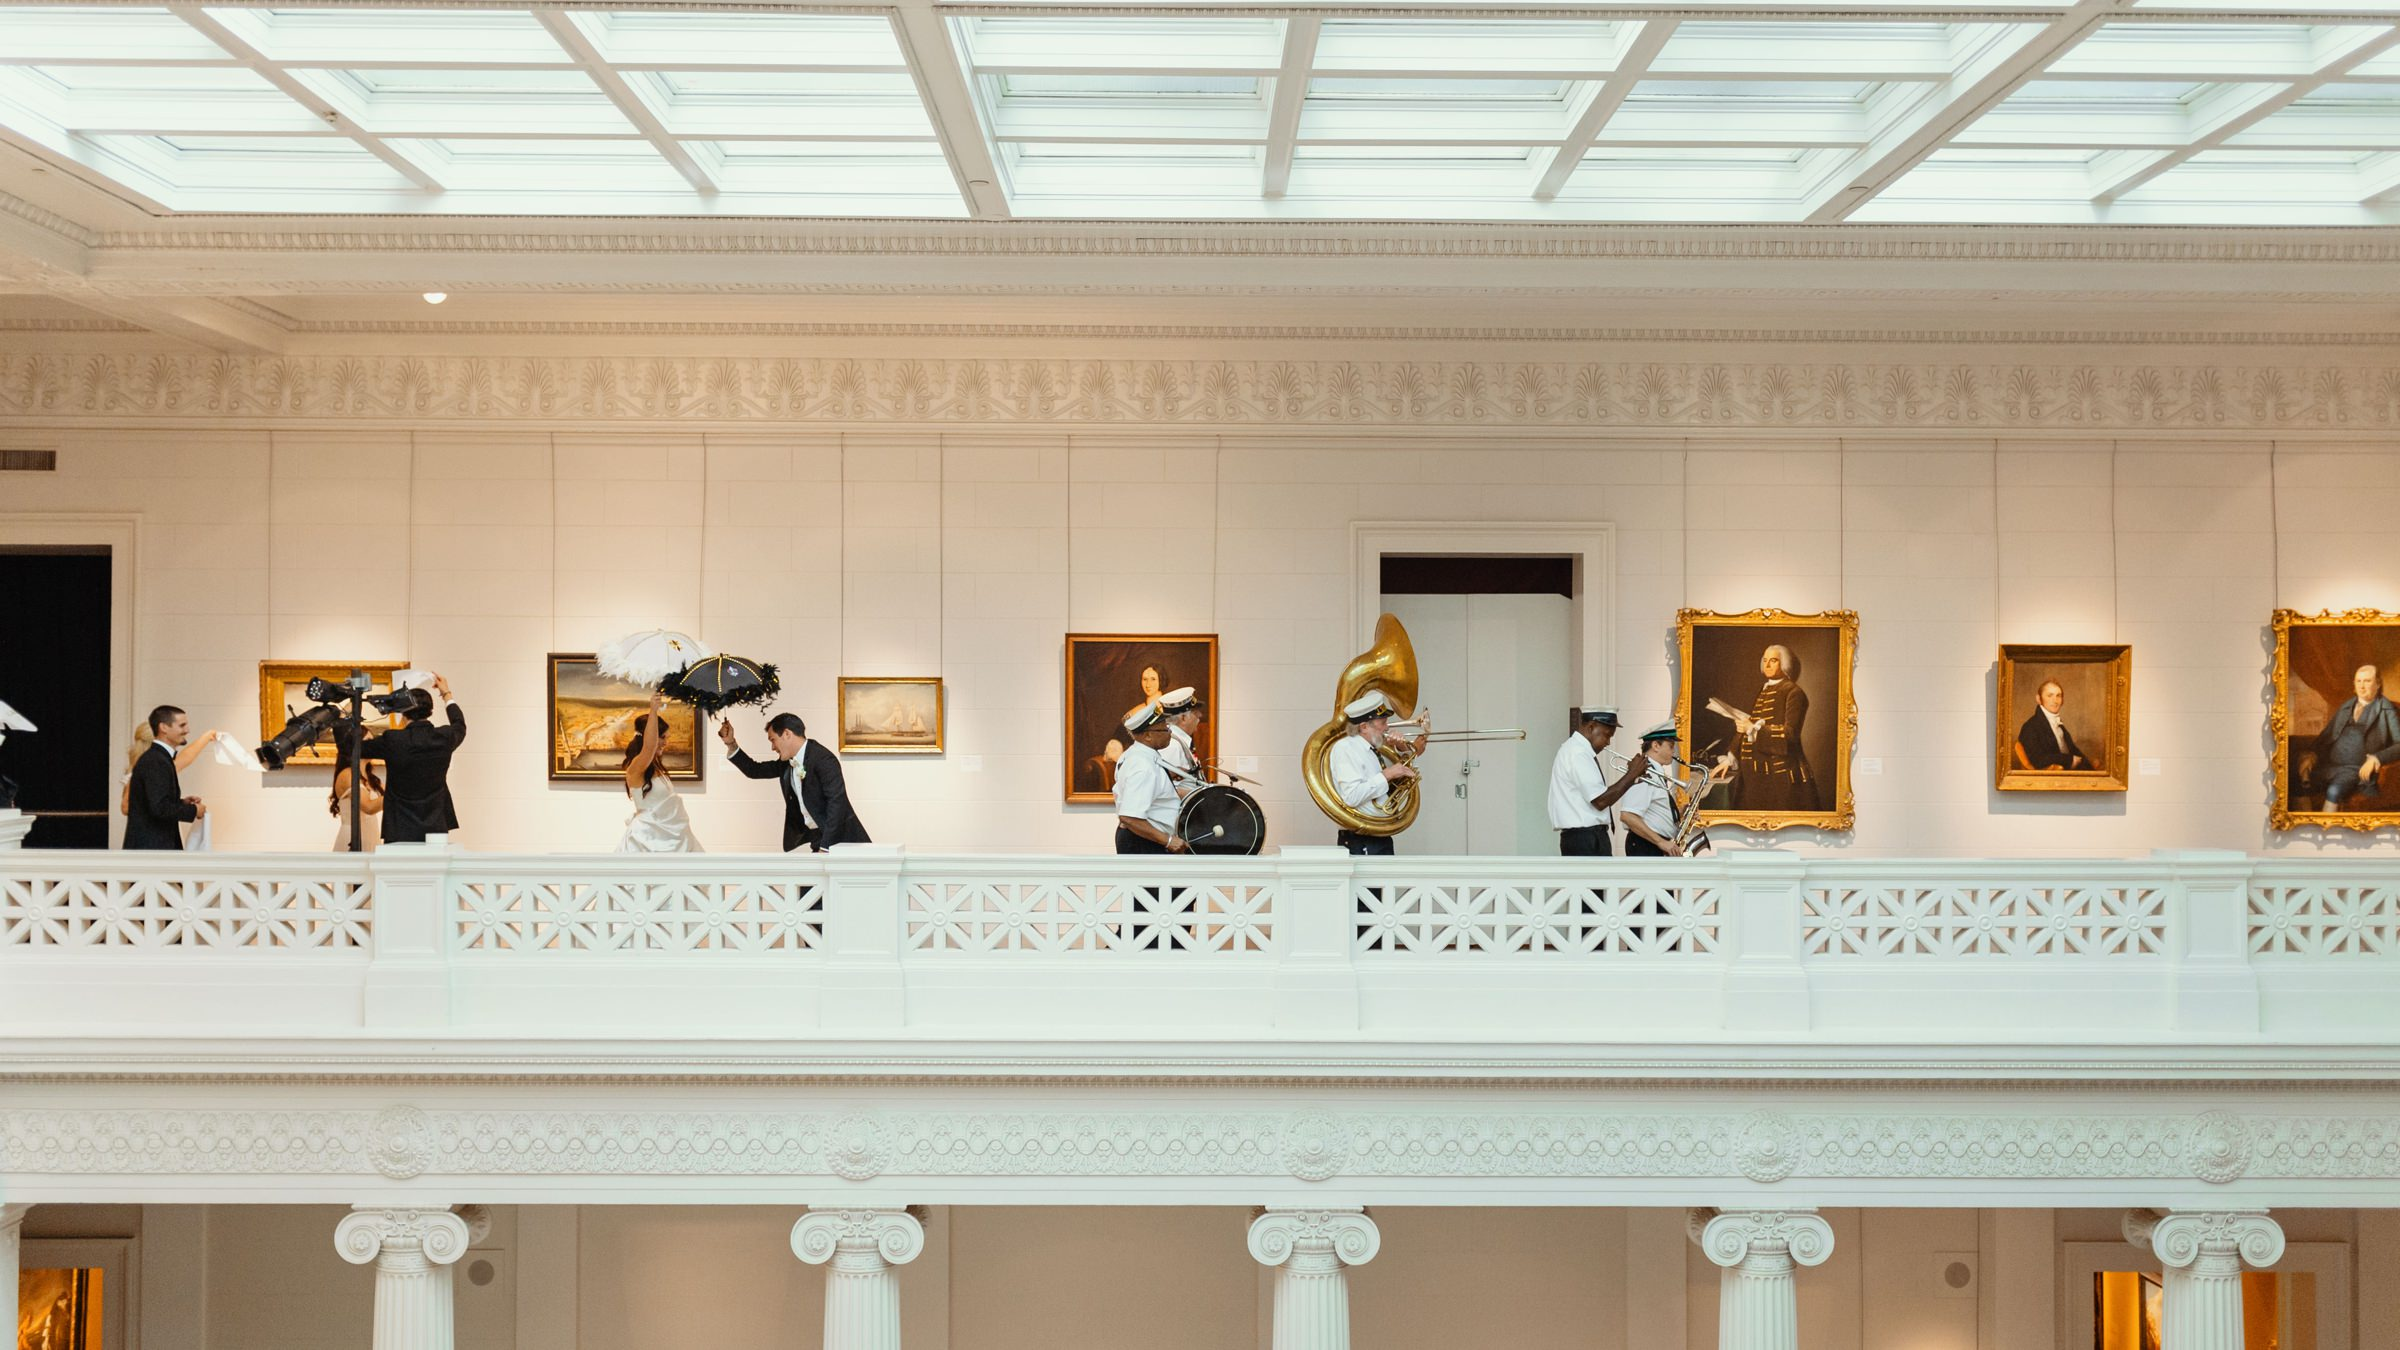 couple-with-brass-band-marching-through-museum-dark-roux